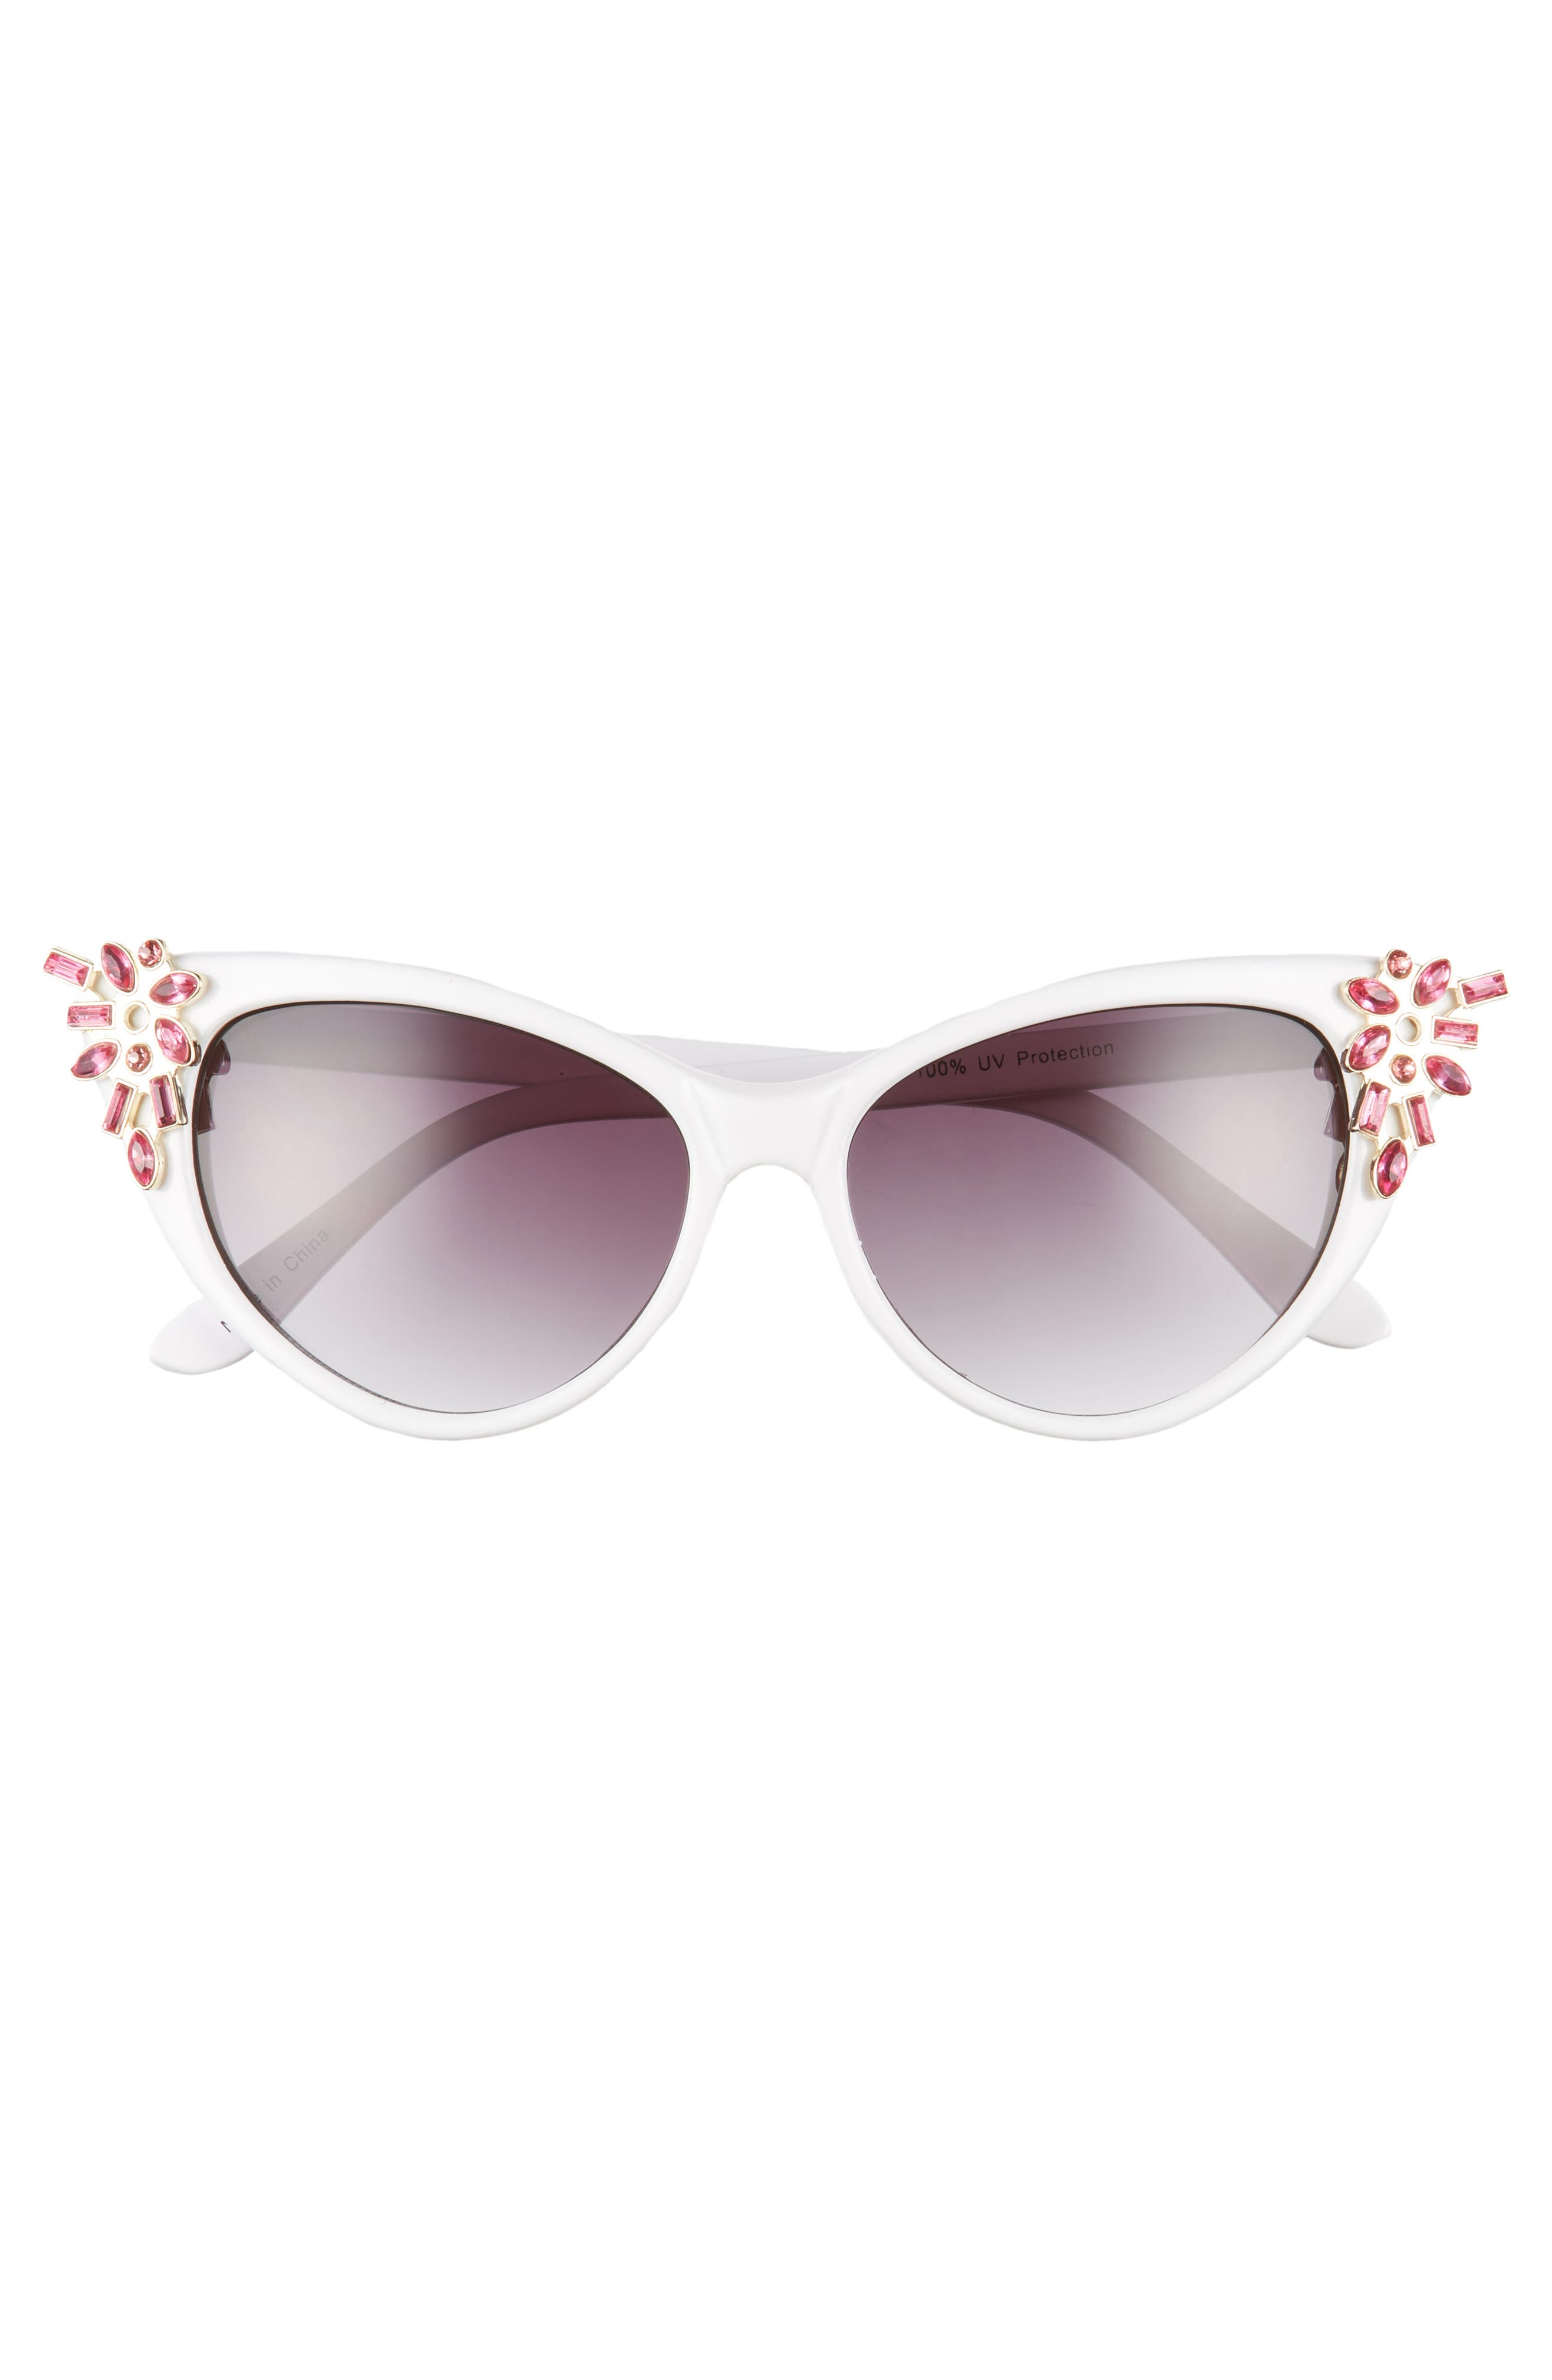 54mm Crystal Exaggerated Cat Eye Sunglasses,                             Alternate thumbnail 3, color,                             White/ Pink